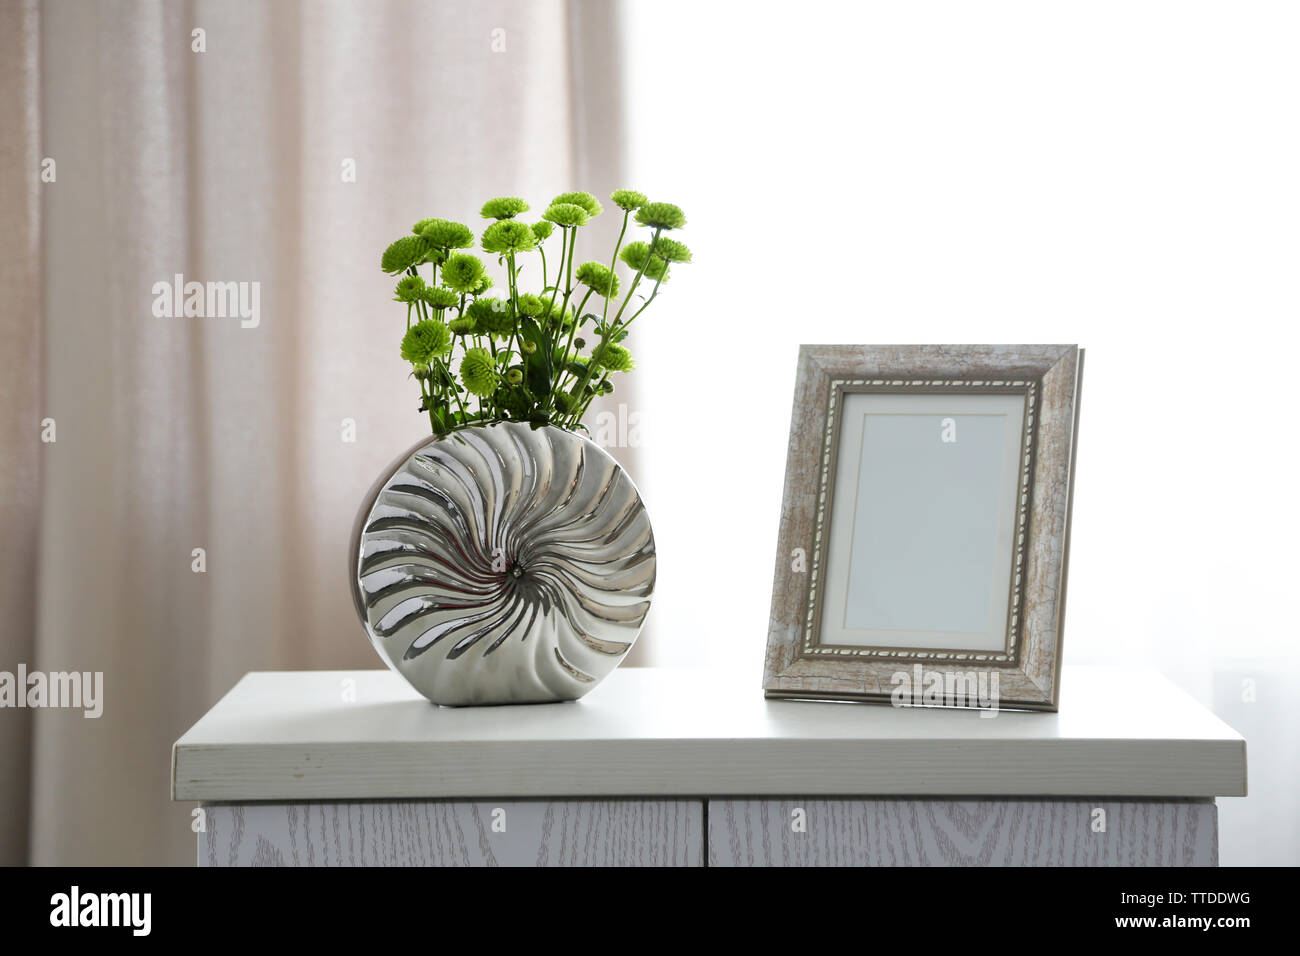 Home decor in a room - Stock Image